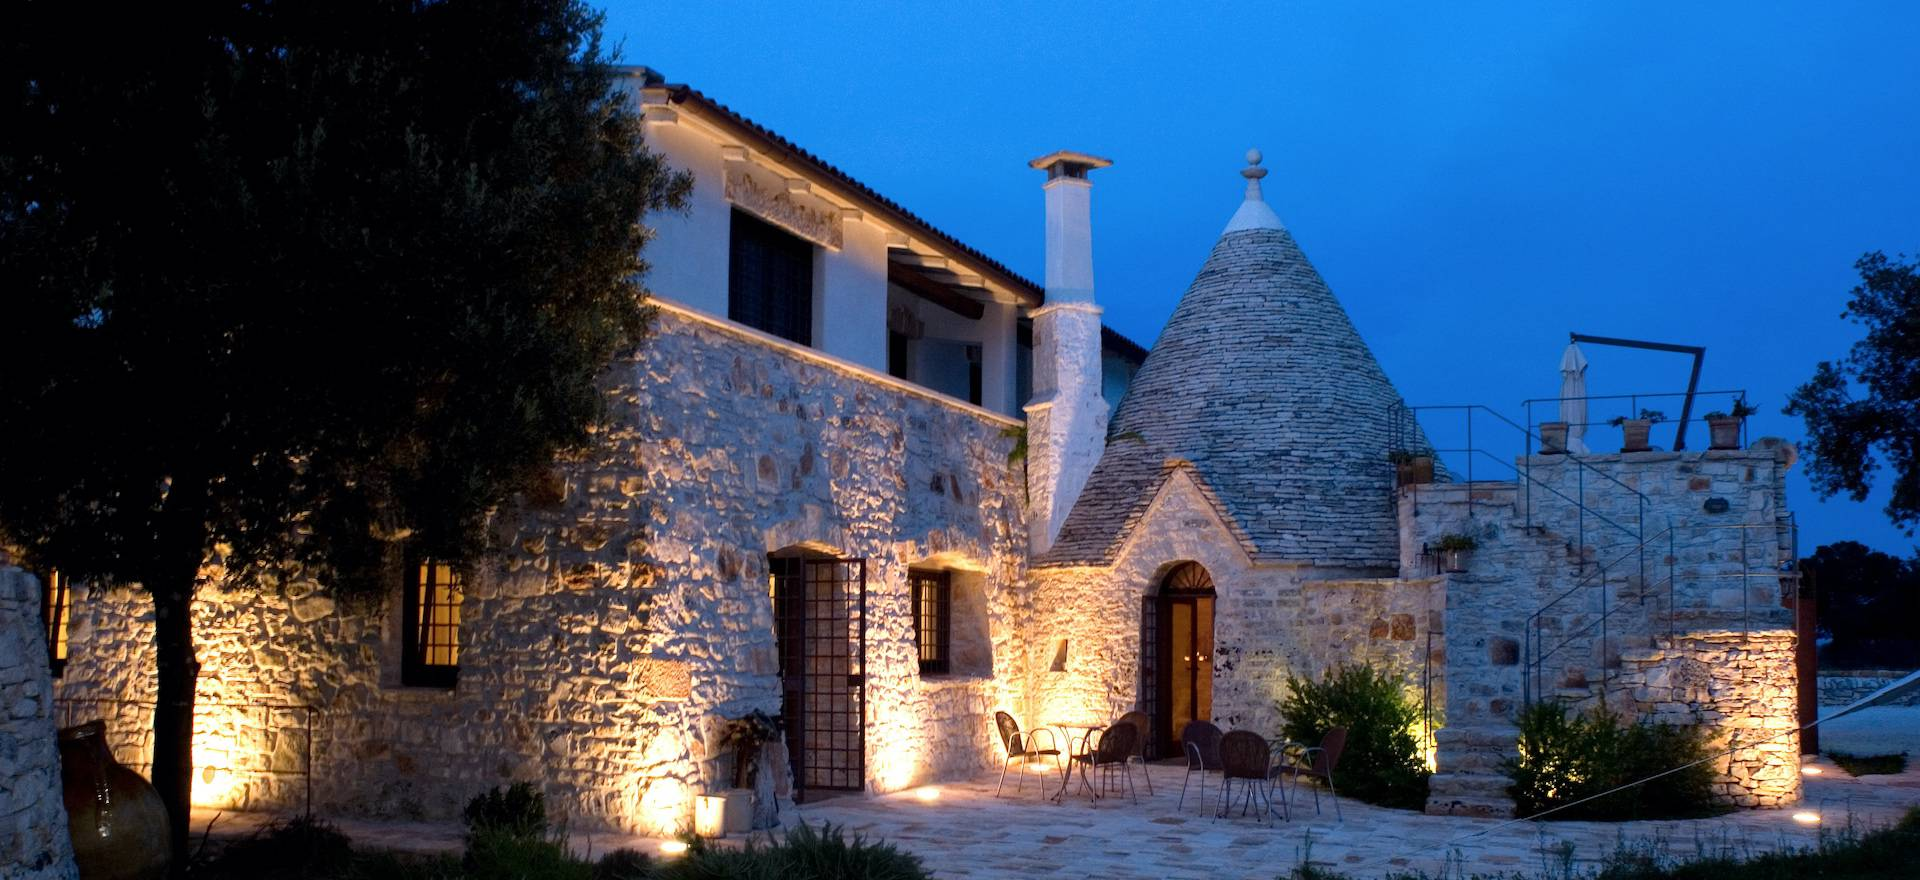 Agriturismo Puglia Agriturismo quietly located in the countryside of Puglia